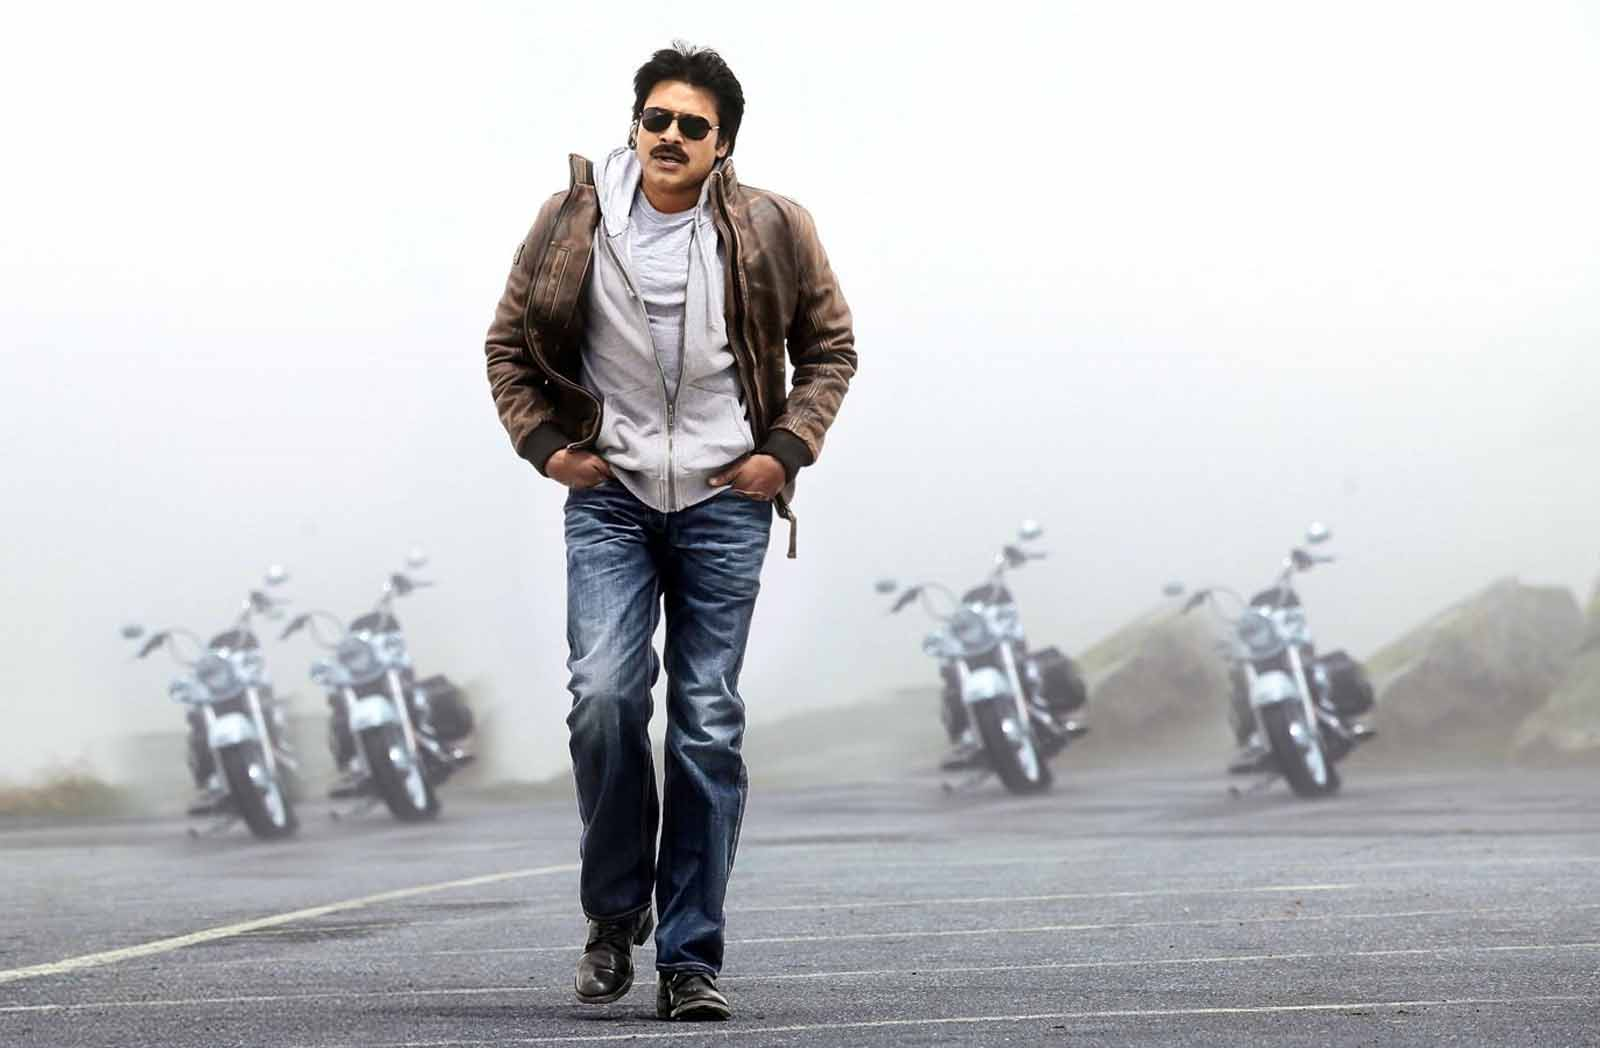 South-Star-Pawan-Kalyan-hd-photos-85206768